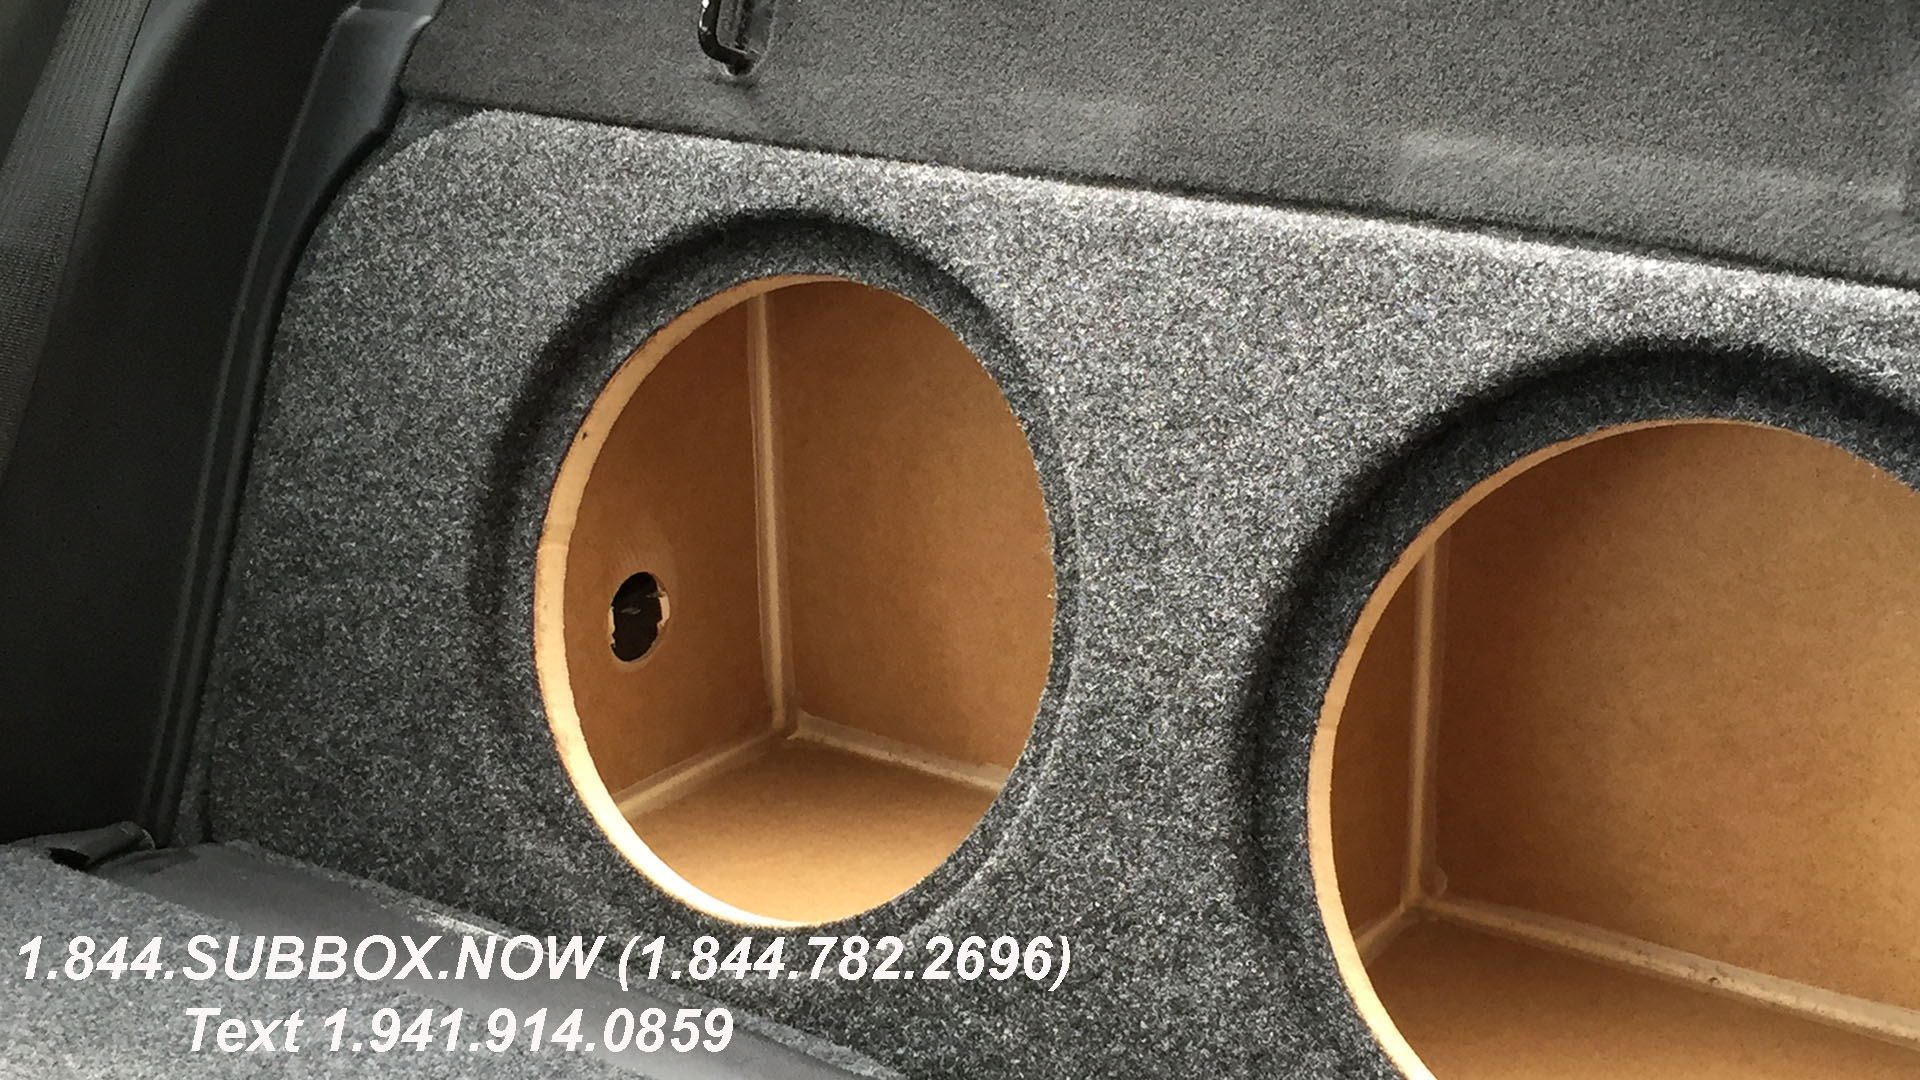 zenclosures on 1999 toyota corolla